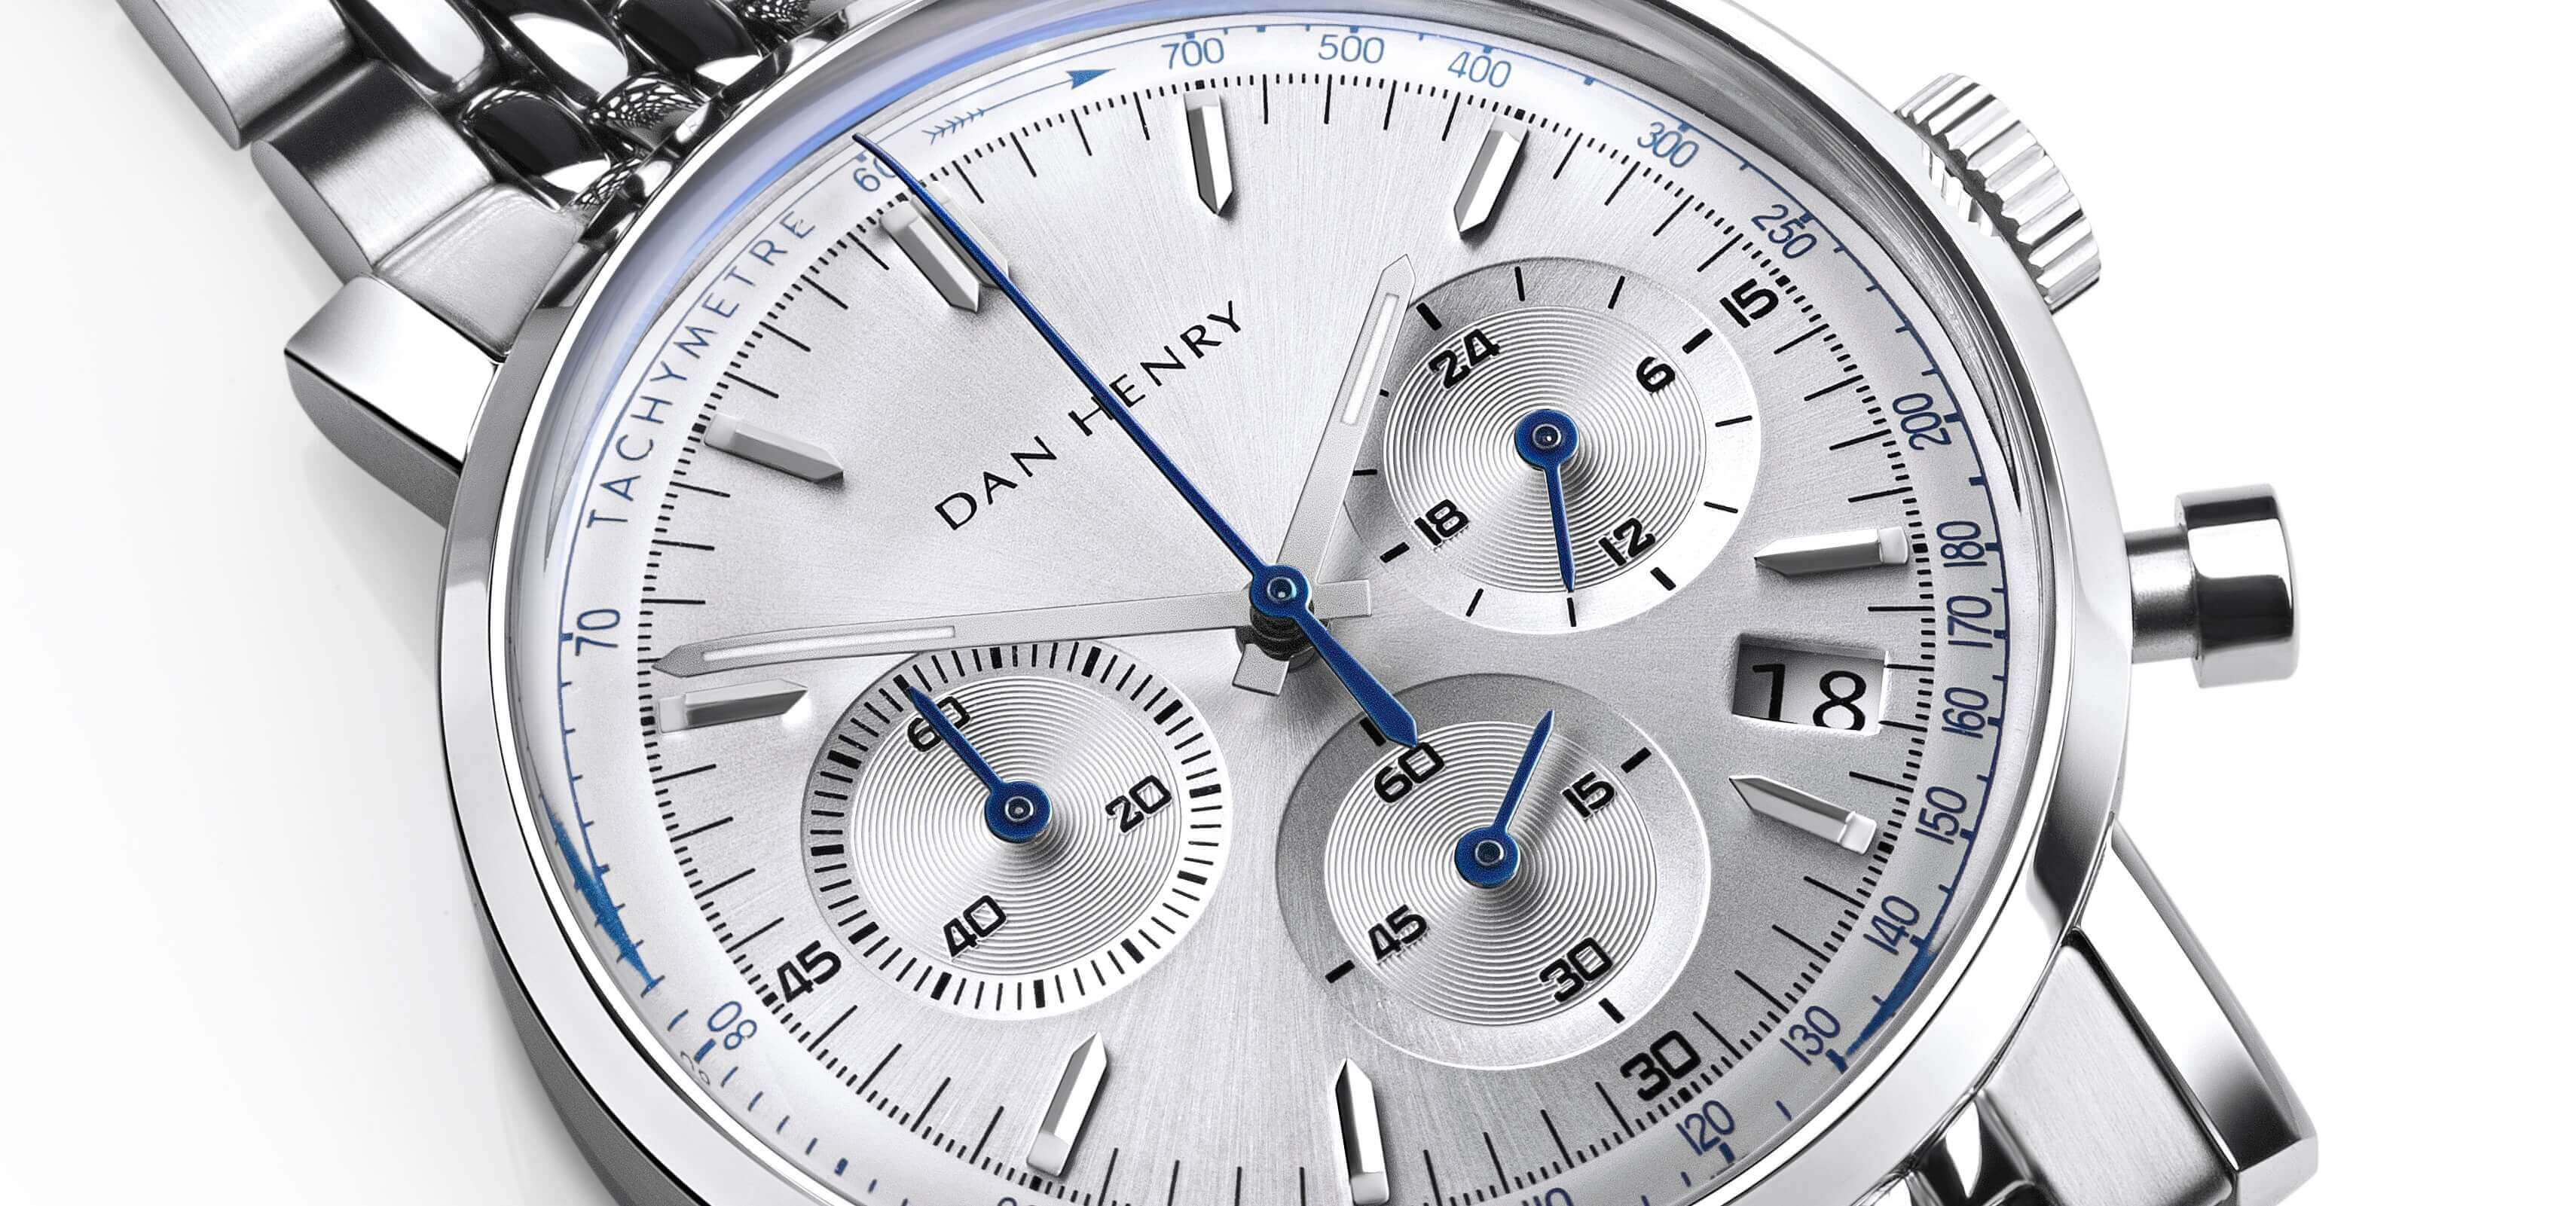 <h3>Dial</h3><p>Silver dial, with date window, black numbers and blue tachymeter</p>